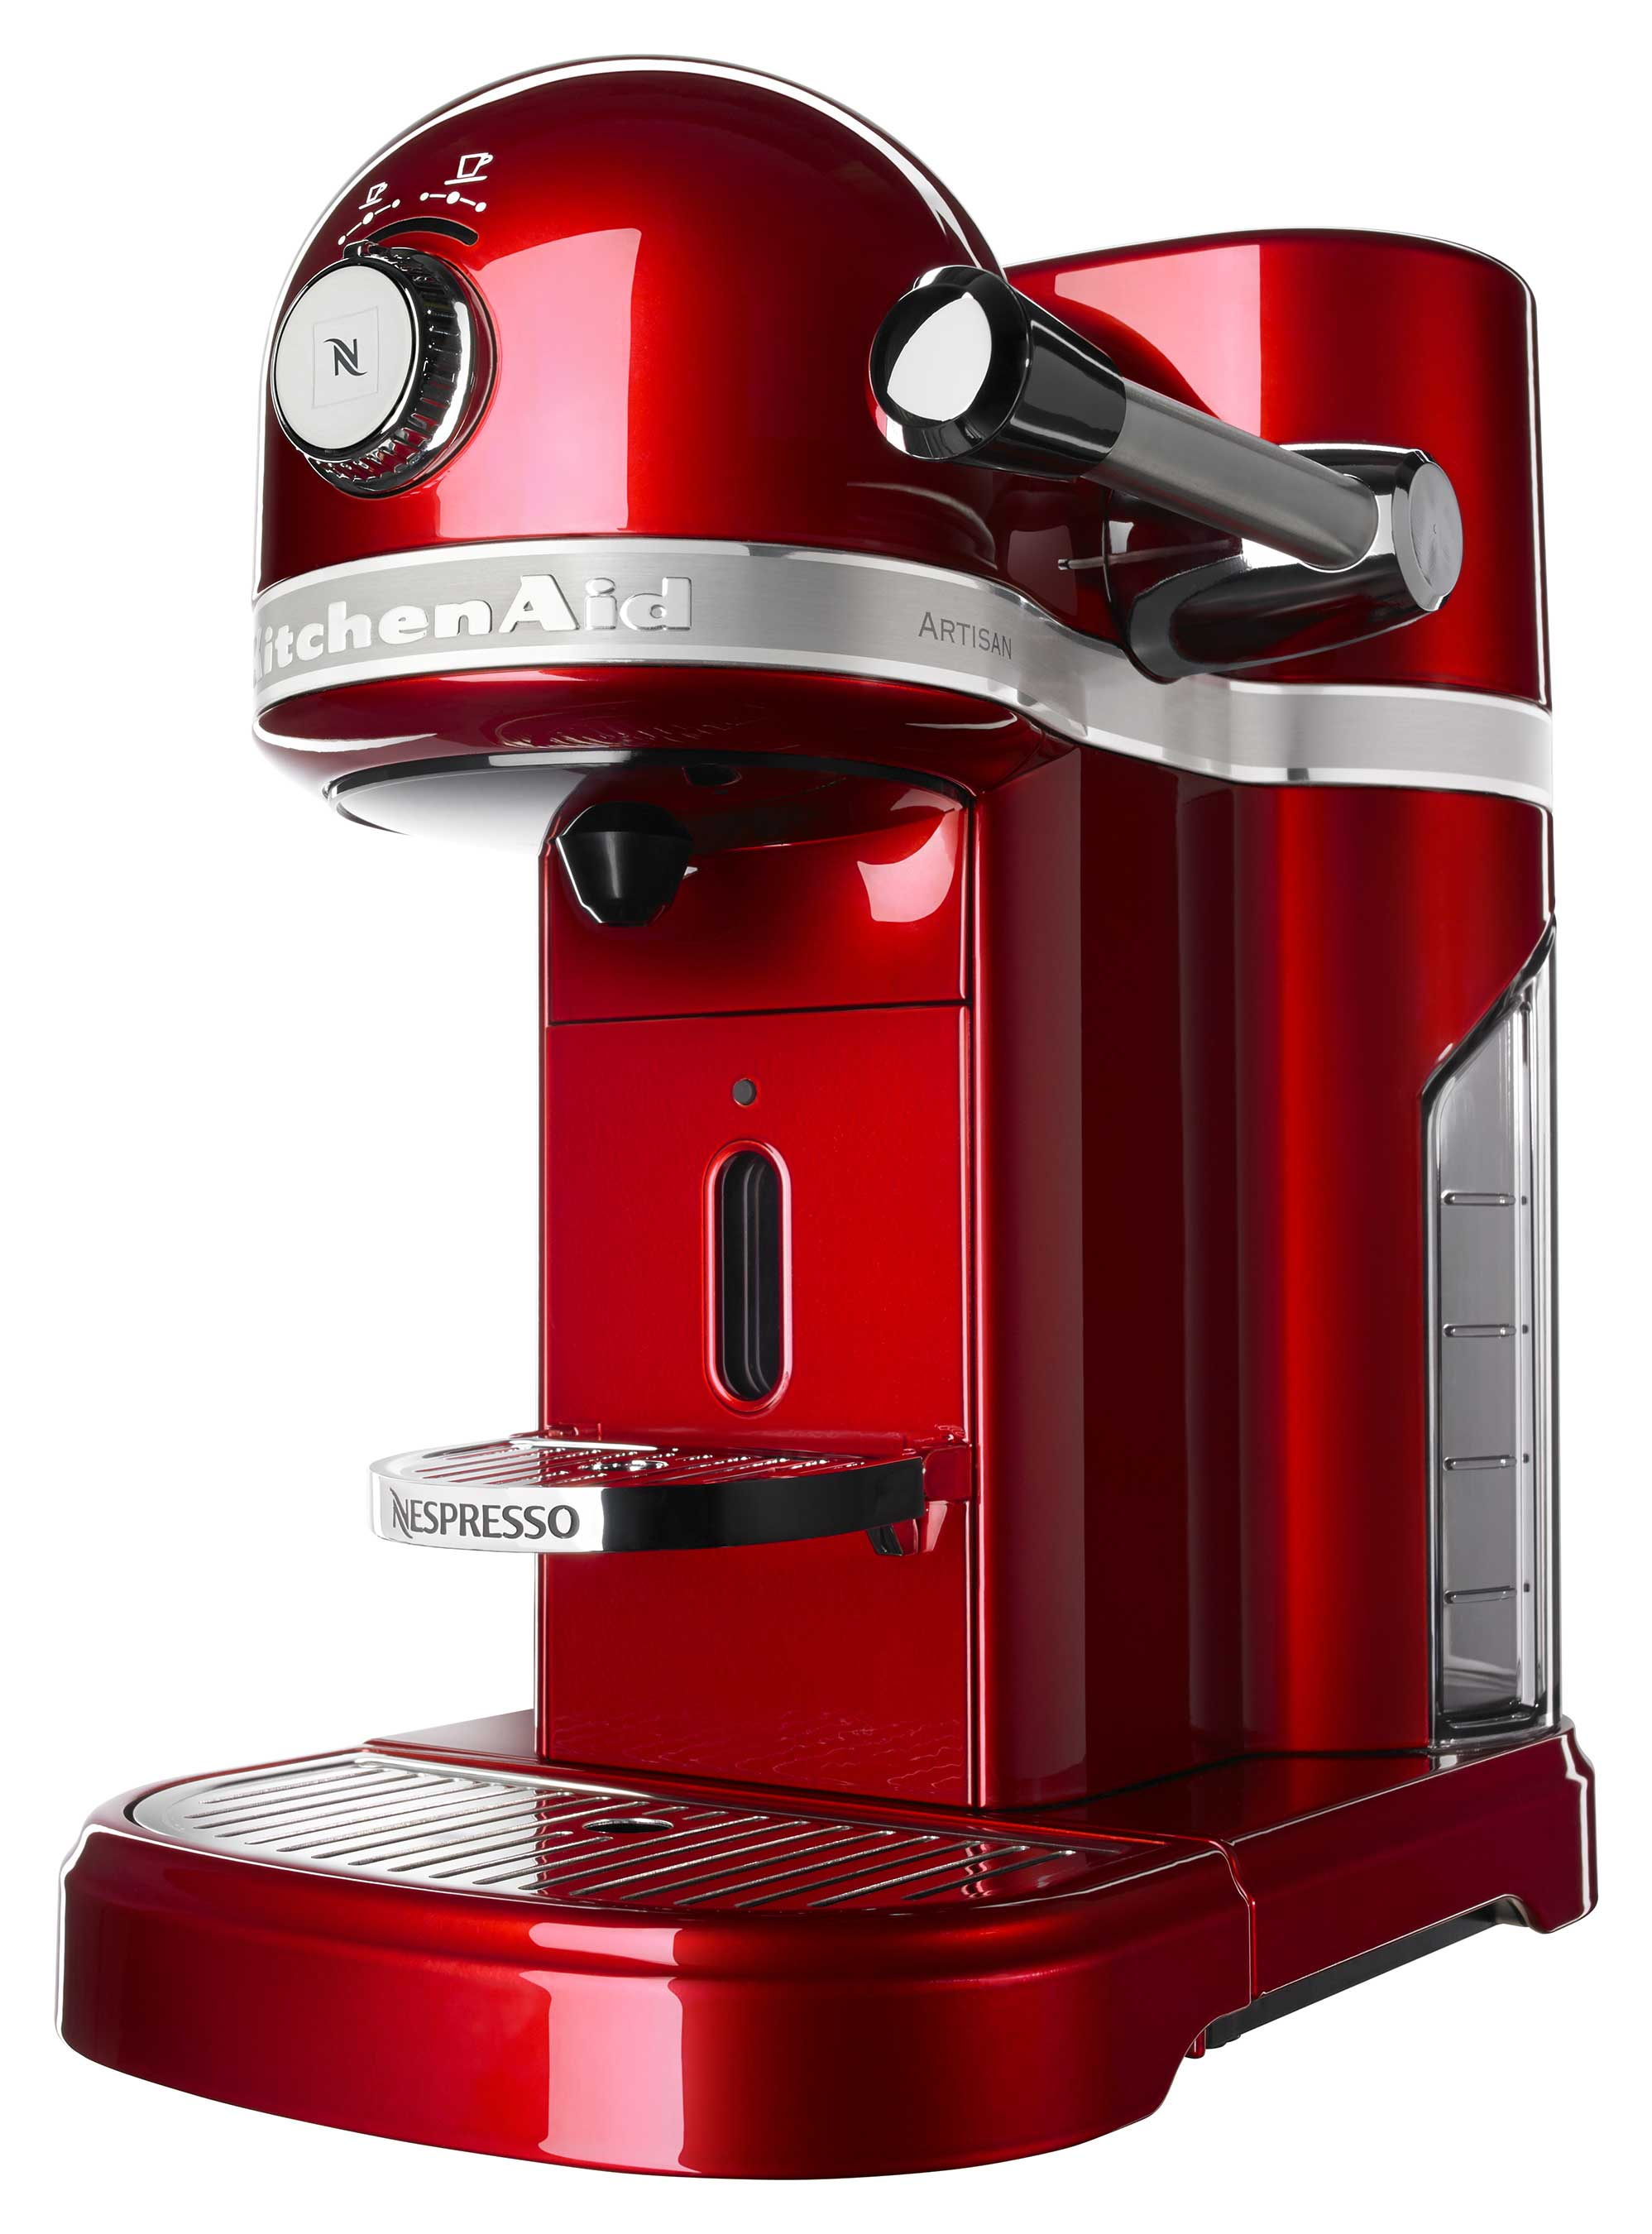 New High Performance Coffee Offerings From Kitchenaid